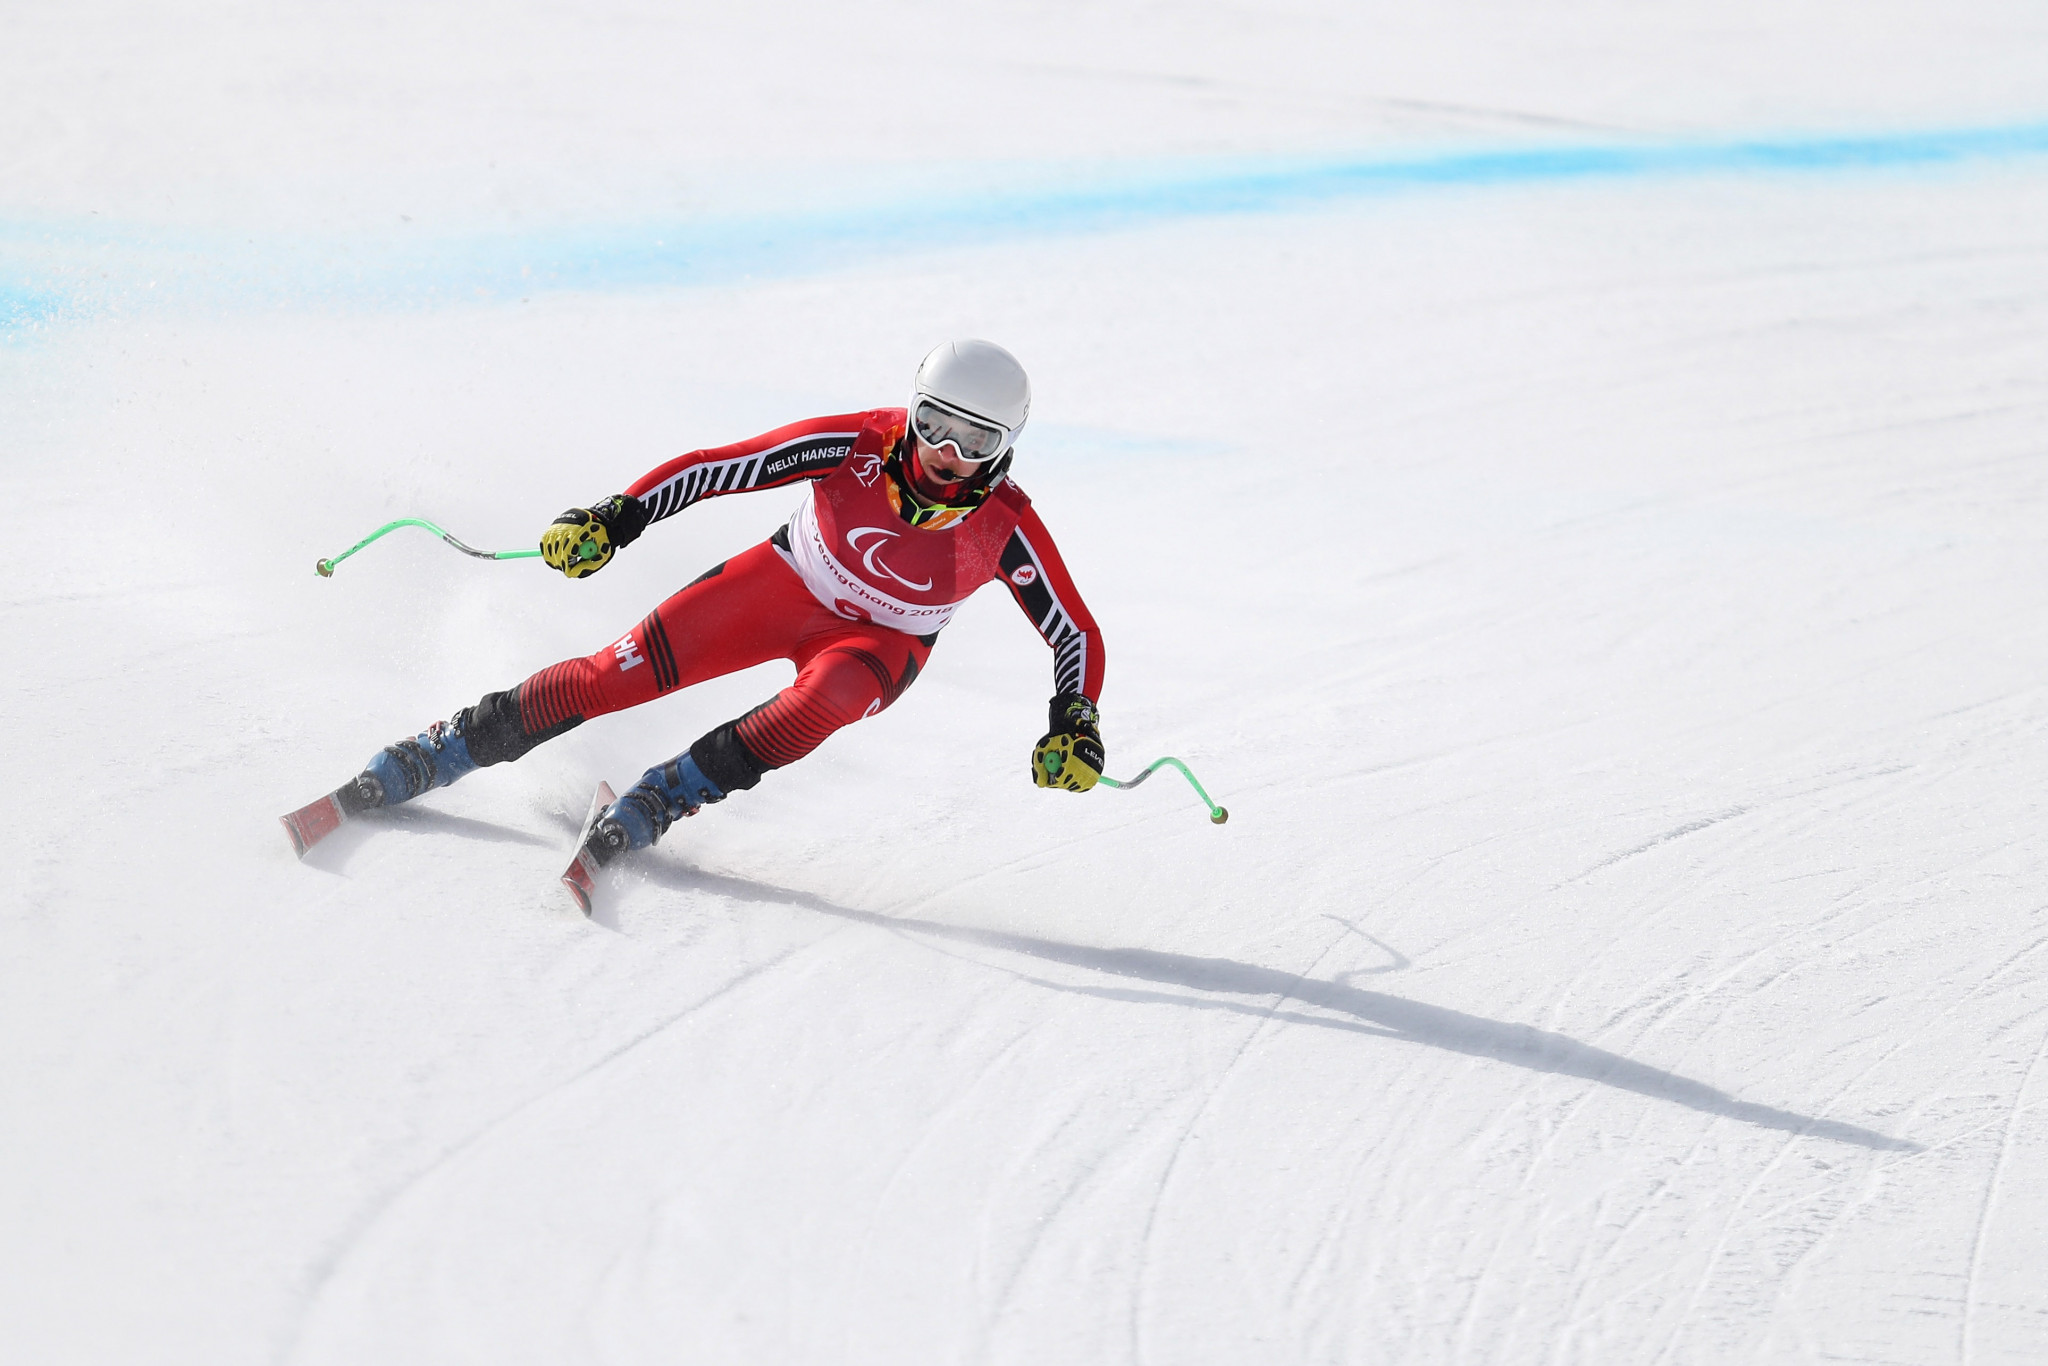 Canada's Mac Marcoux came out on top in the men's visually impaired event ©Getty Images